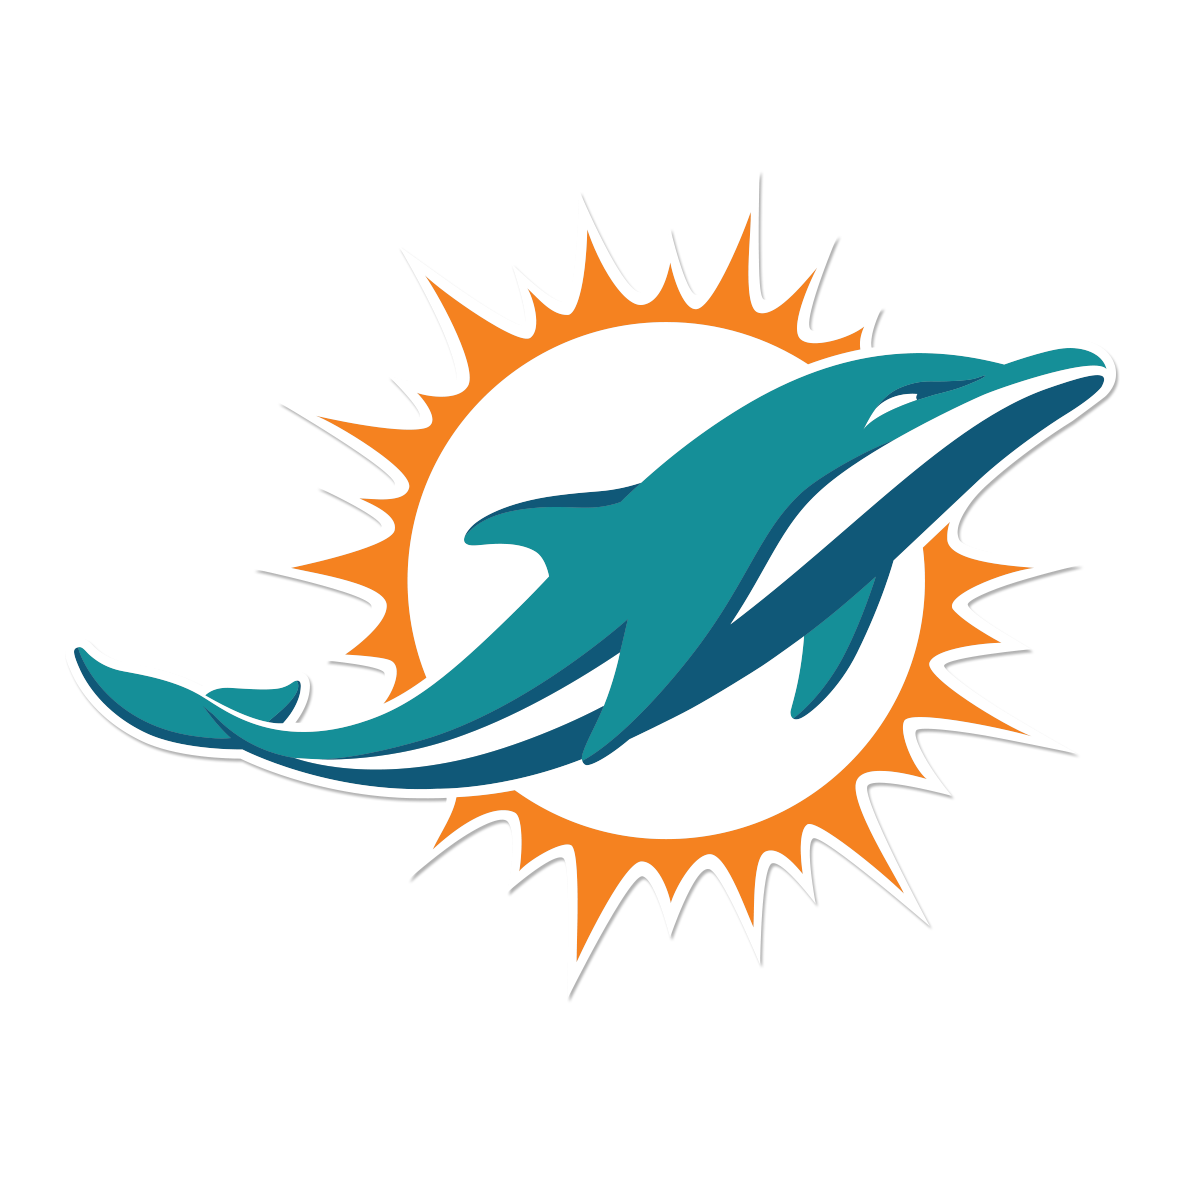 Dolphins clipart copyright free. Download clip art on